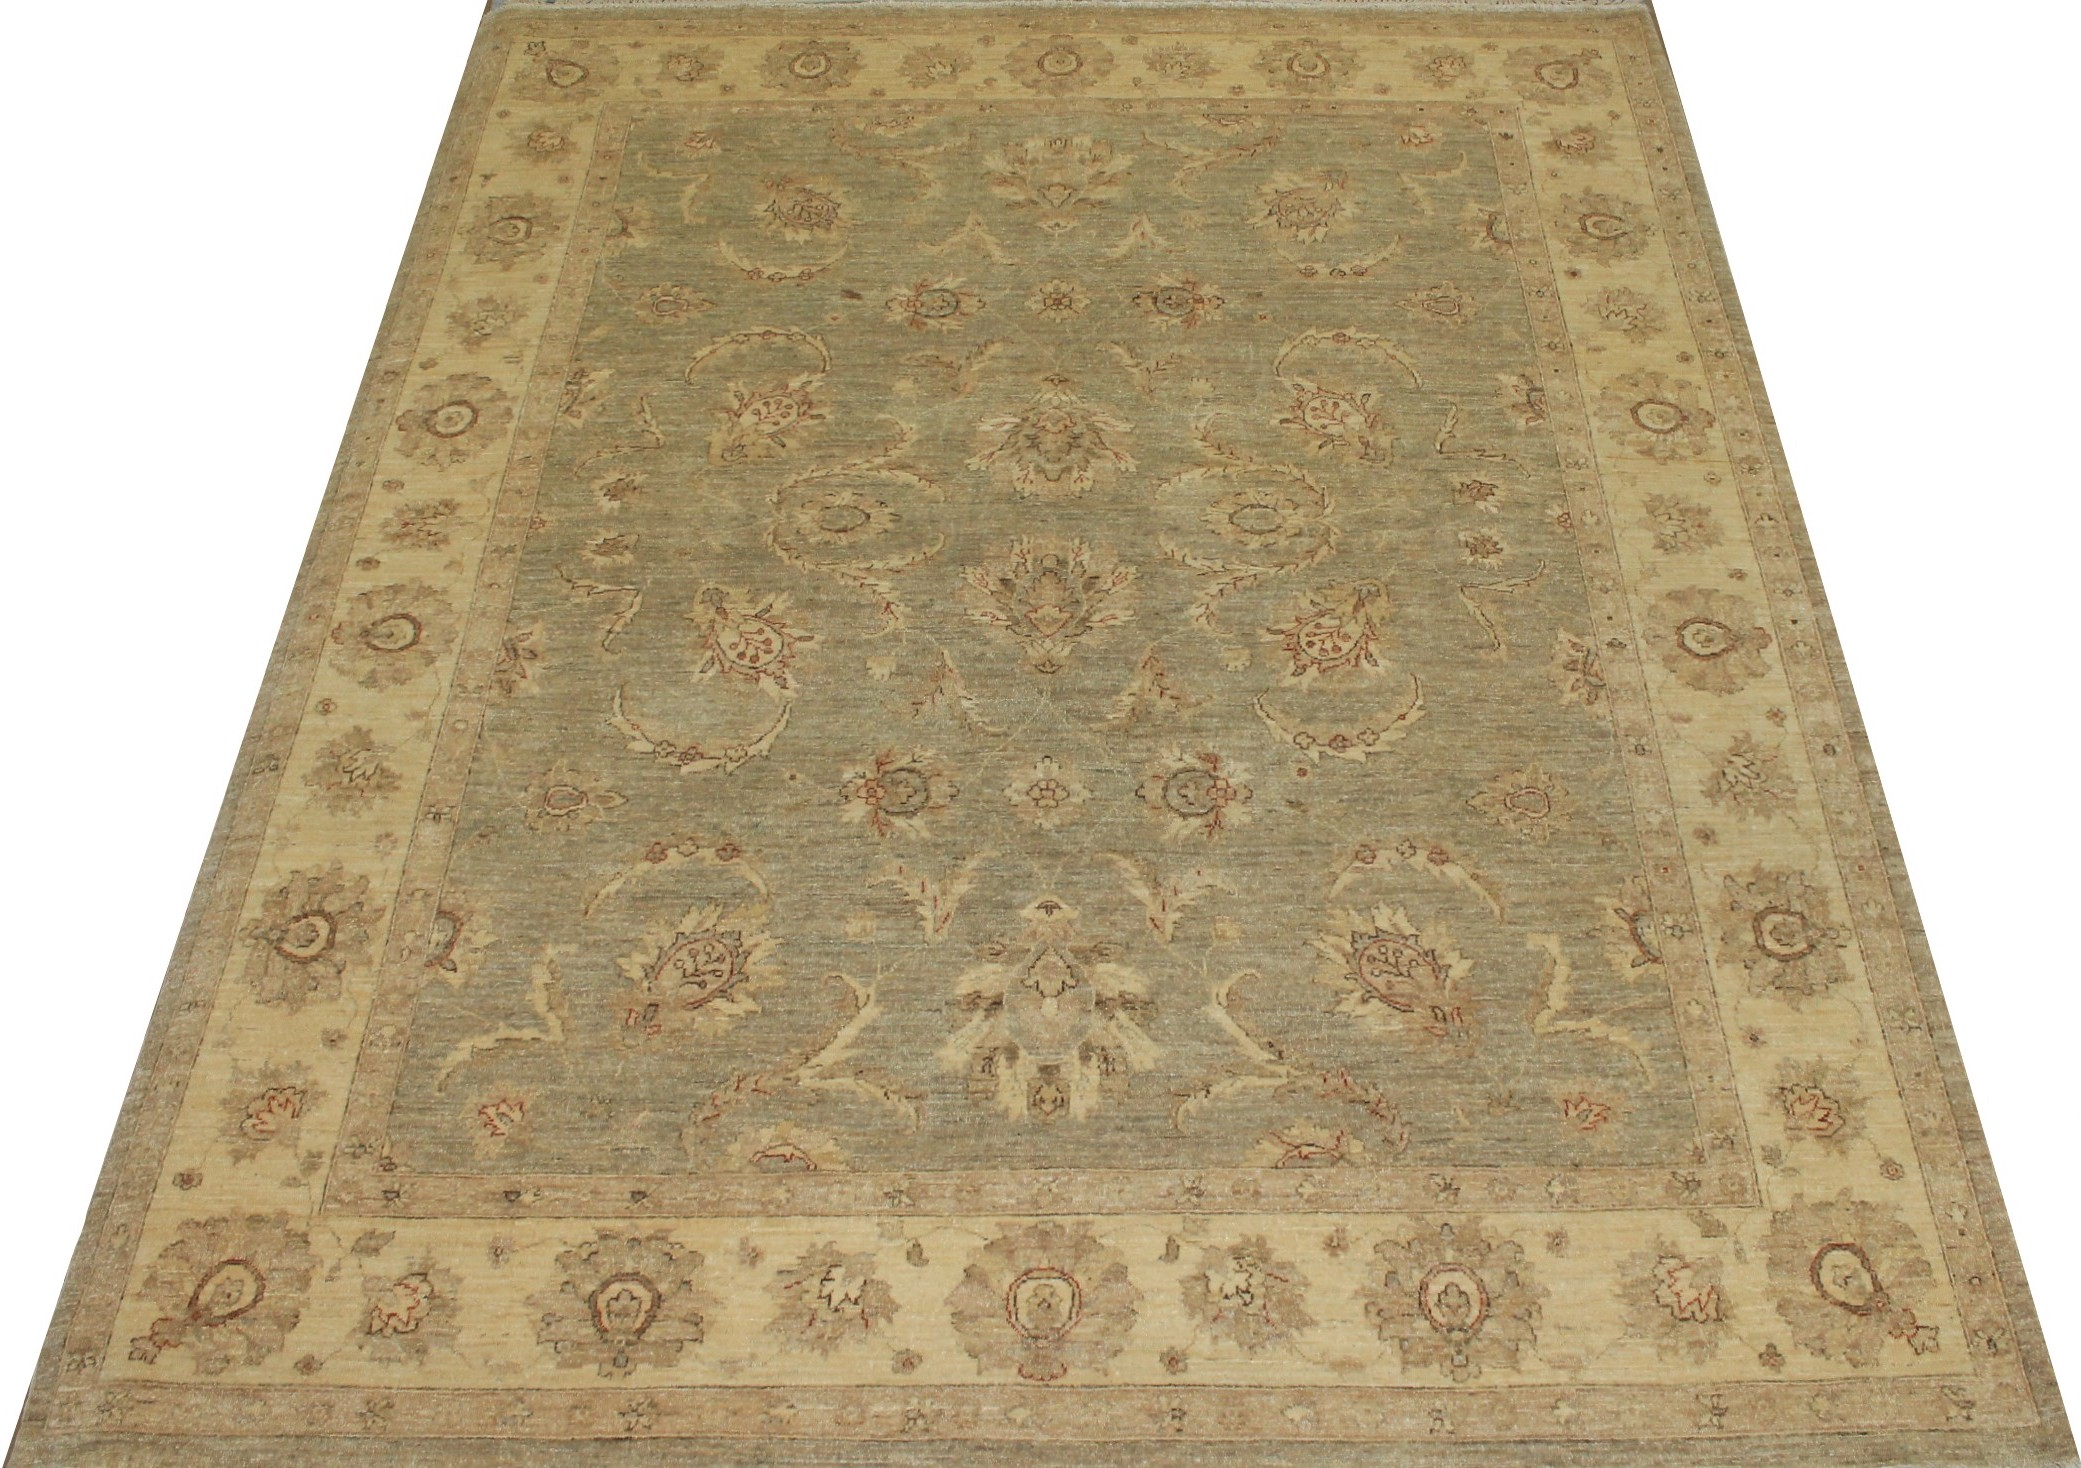 8x10 Peshawar Hand Knotted Wool Area Rug - MR13352